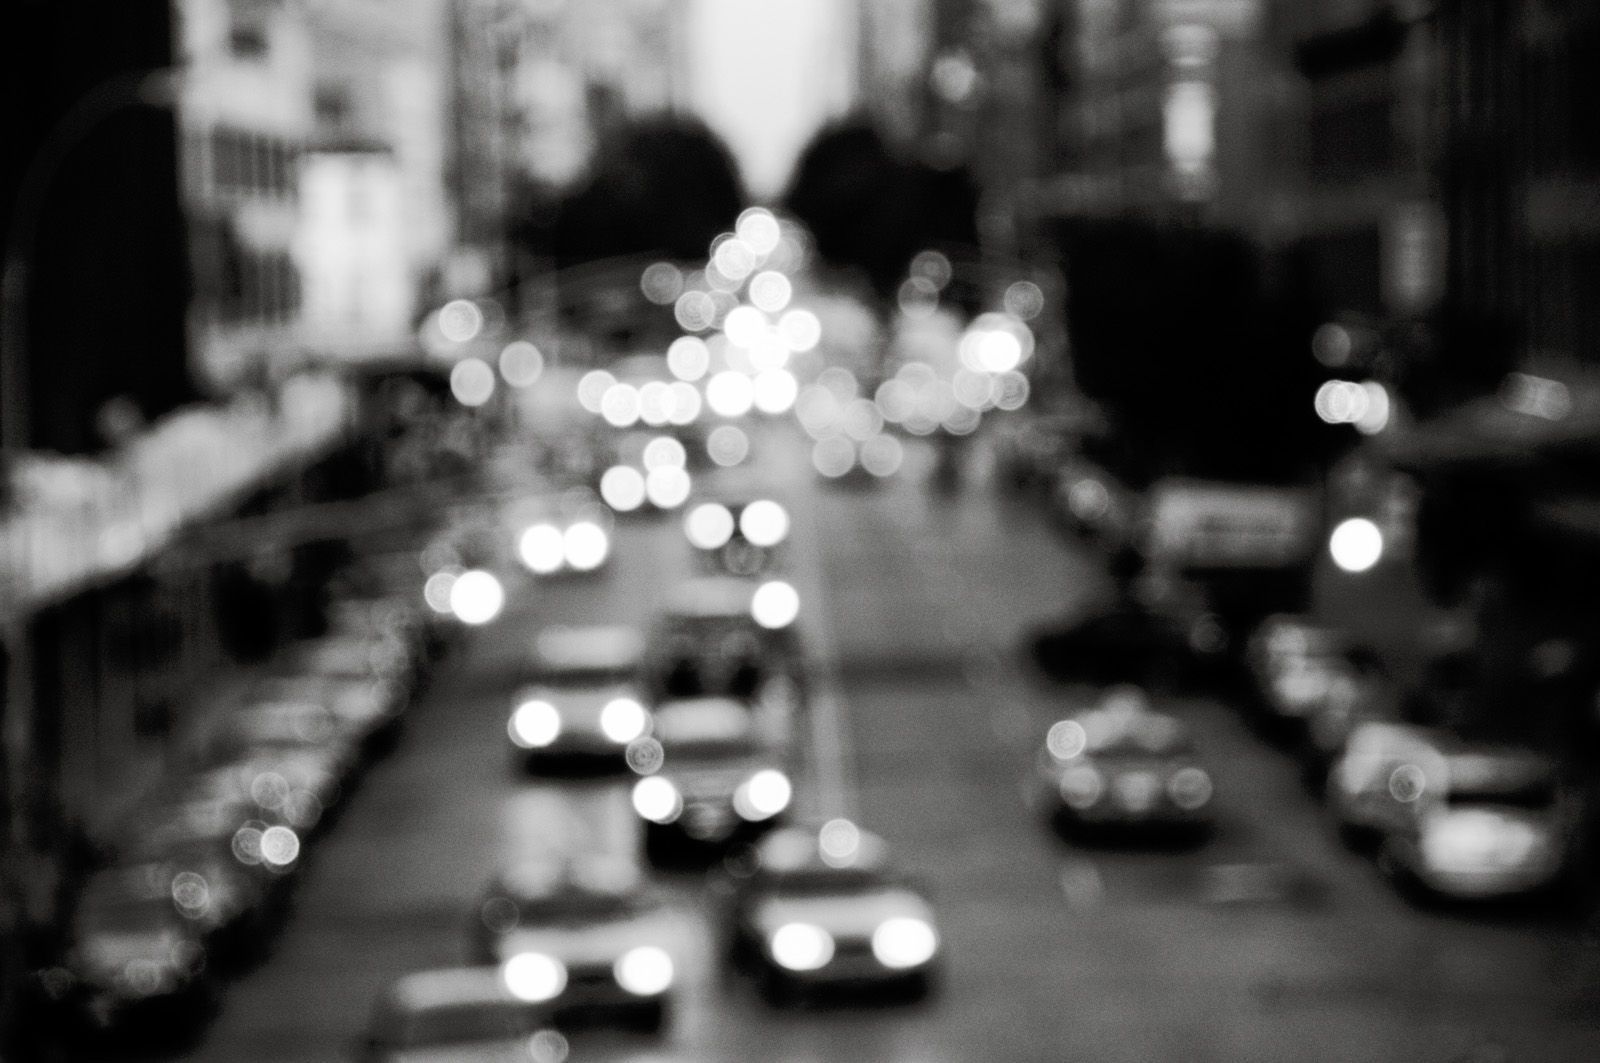 Blurred City Lights Black And White (id: 58779) | Buzzerg.com